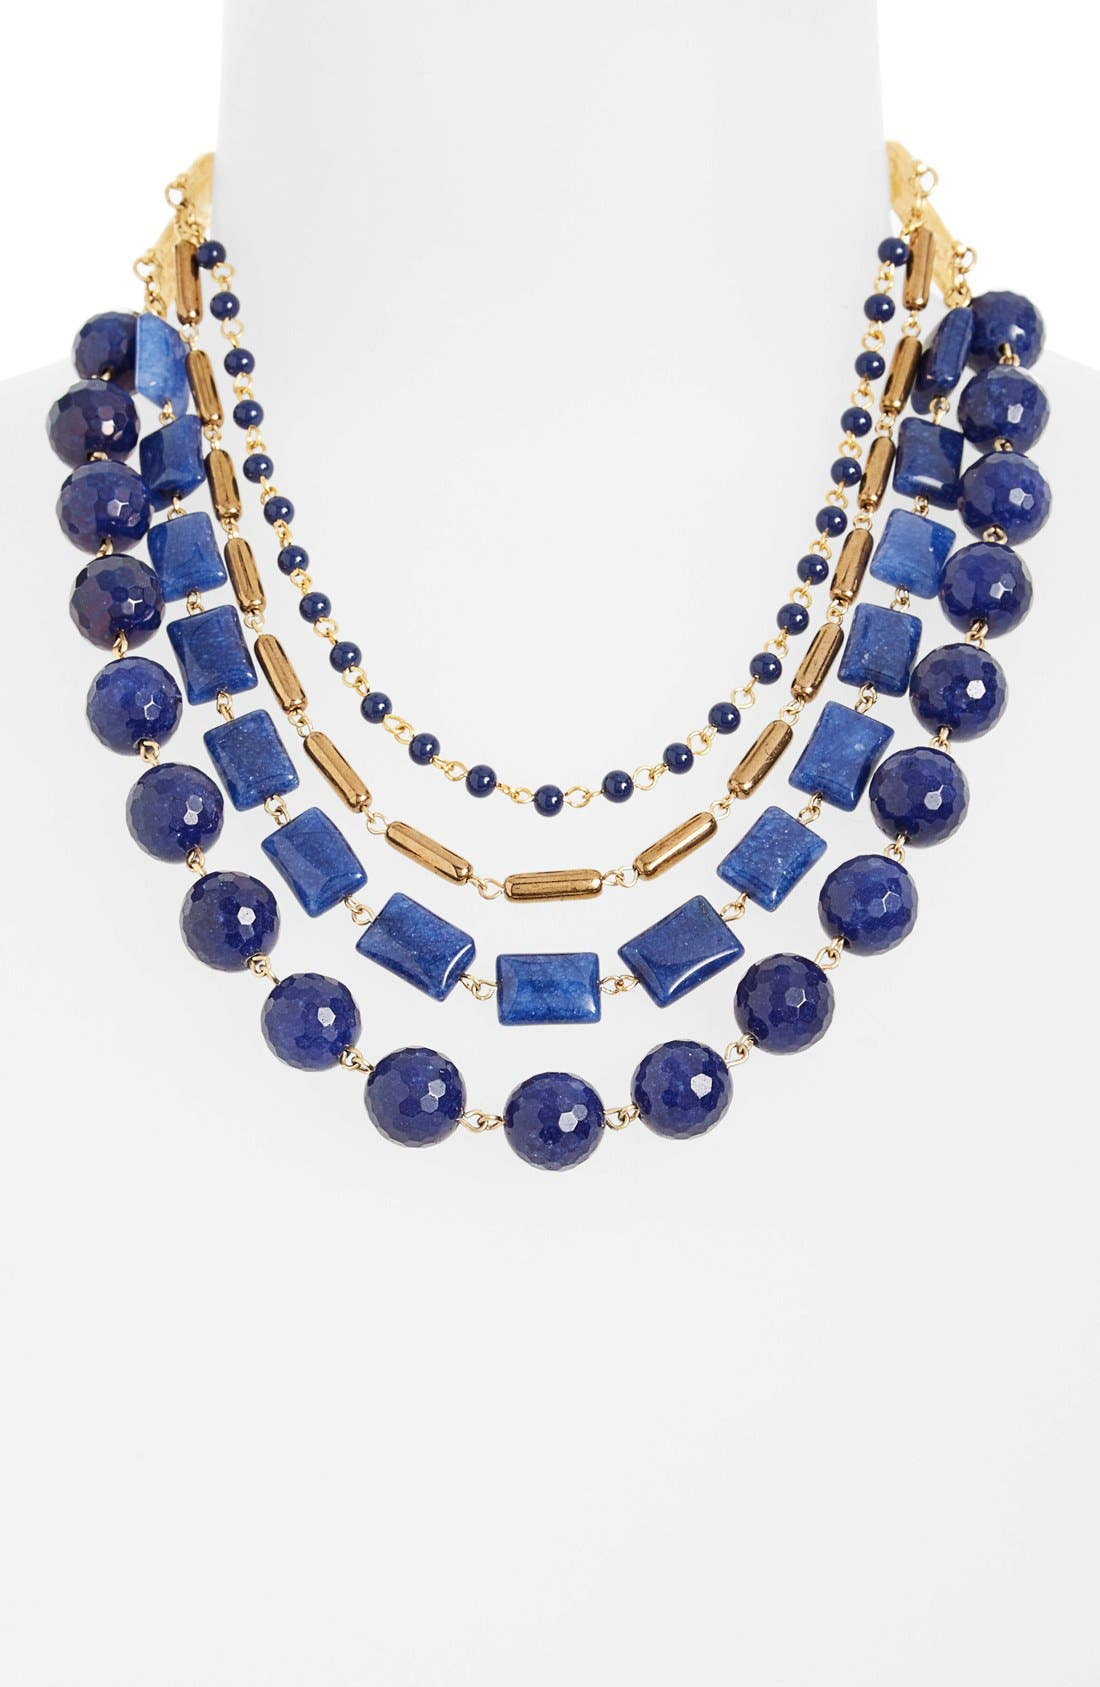 Alternate Image 1 Selected - David Aubrey Multistrand Stone Necklace